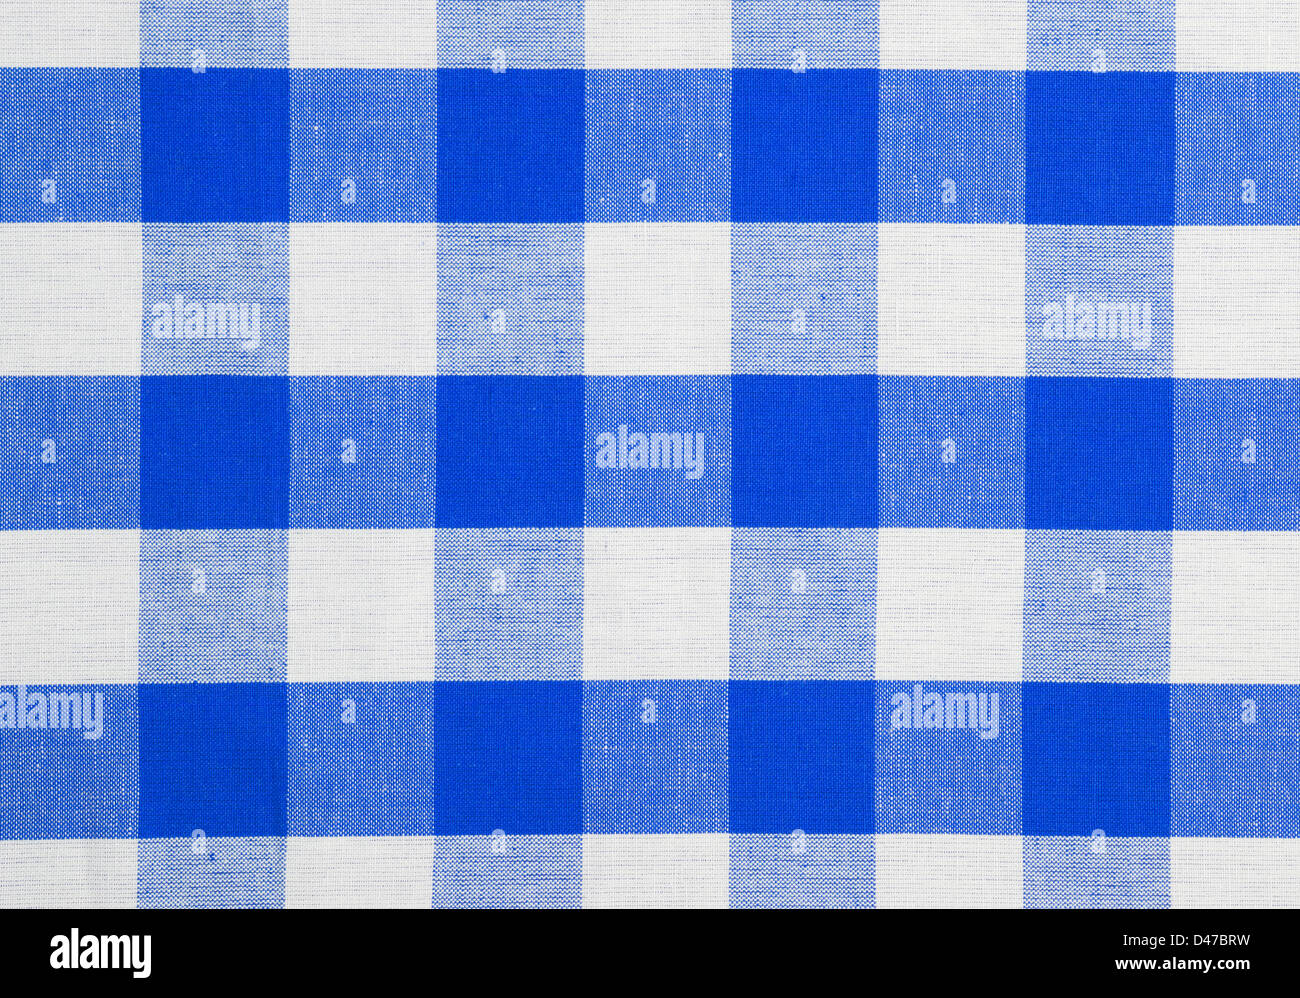 Bon Blue Checked Fabric Tablecloth   Stock Image